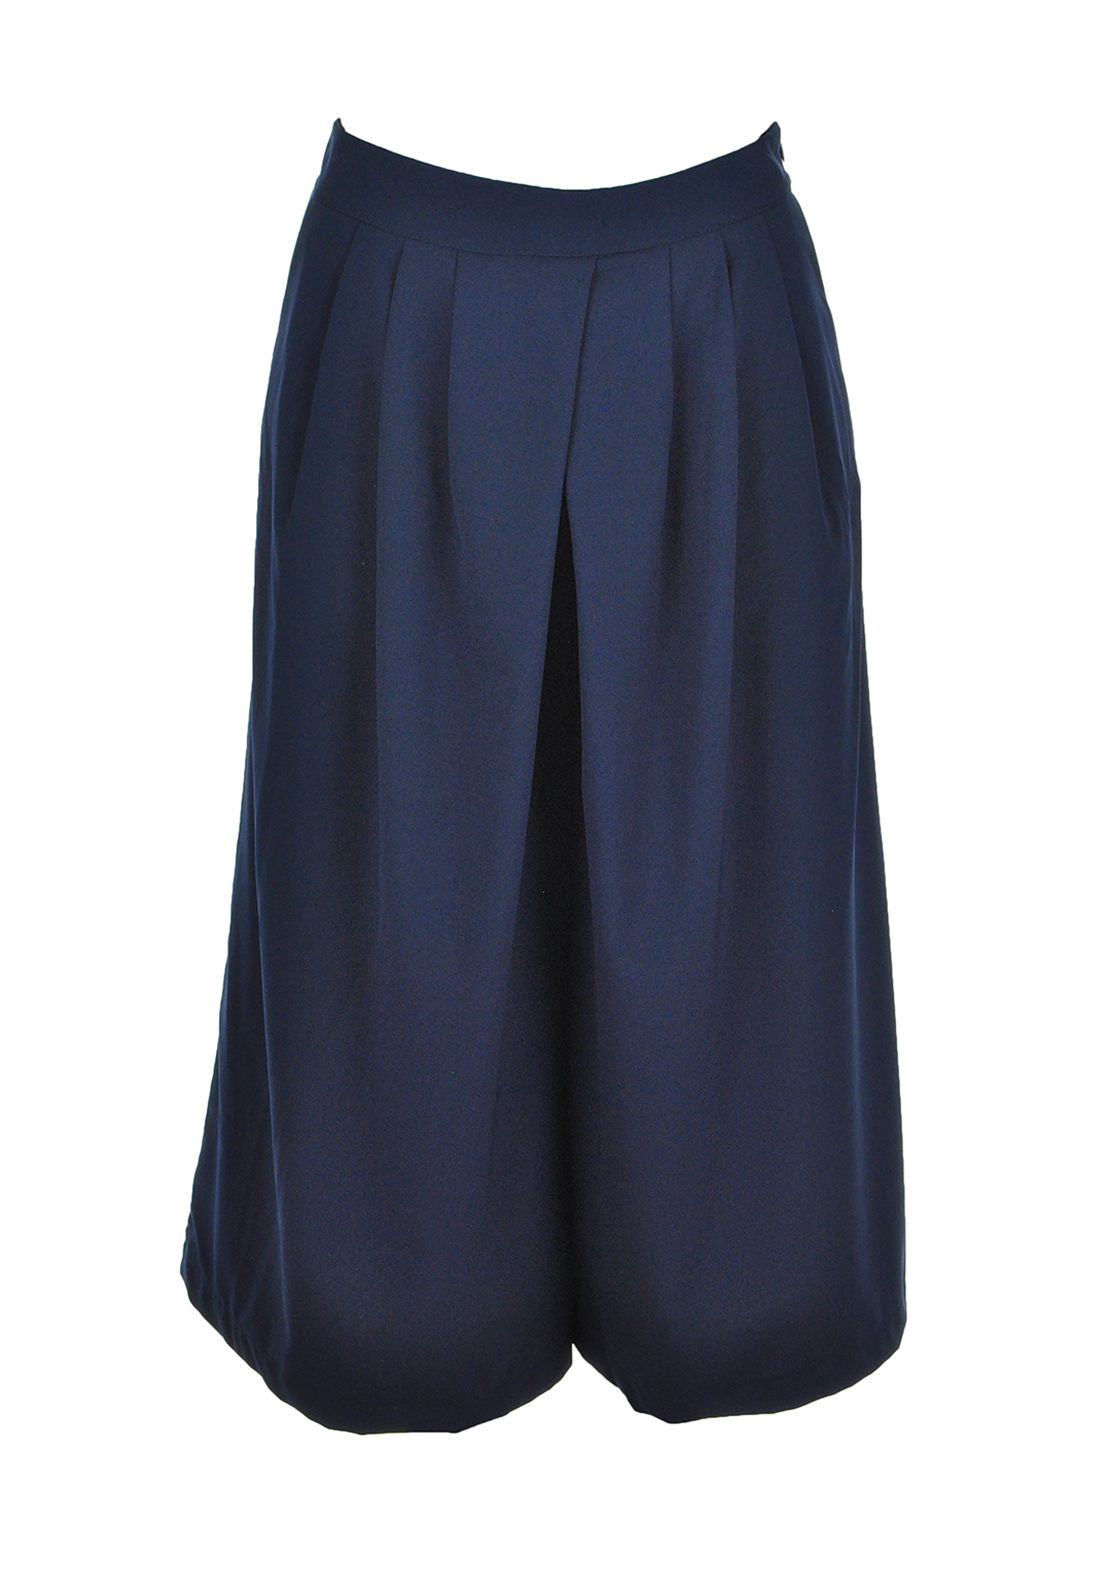 d.e.c.k. By Decollage Cullottes Cropped Trousers, Navy